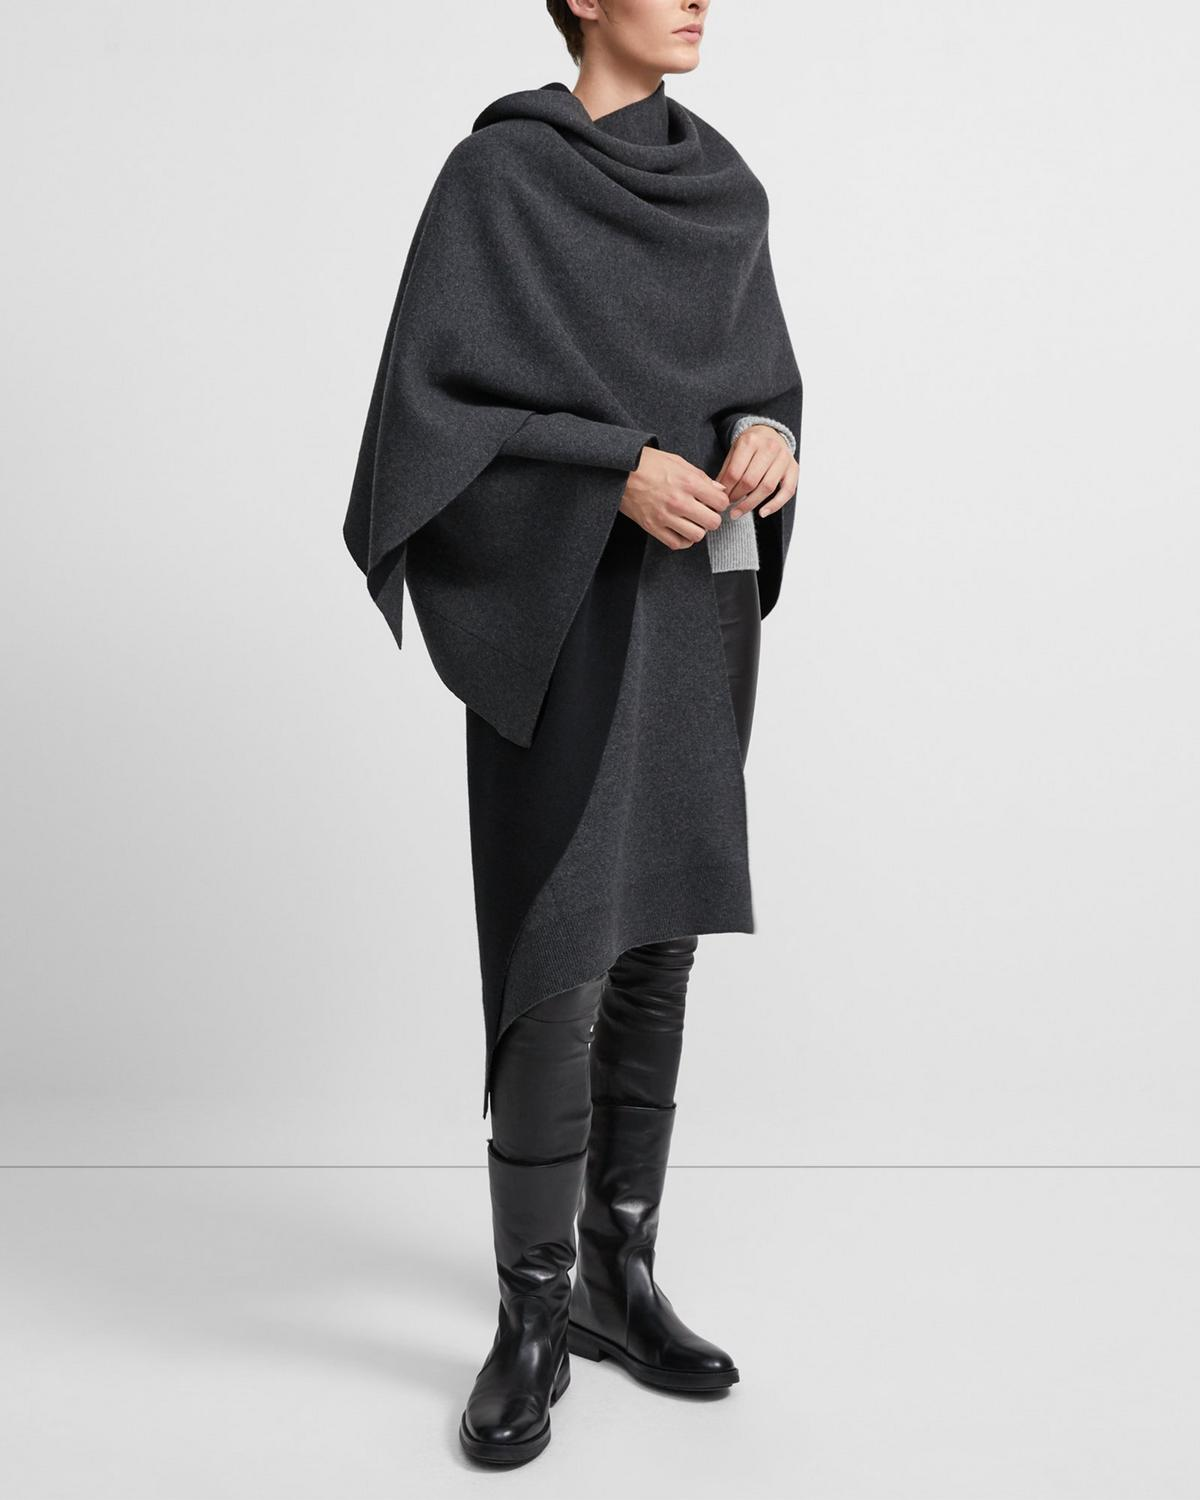 Poncho in Felted Wool-Cashmere 0 - click to view larger image